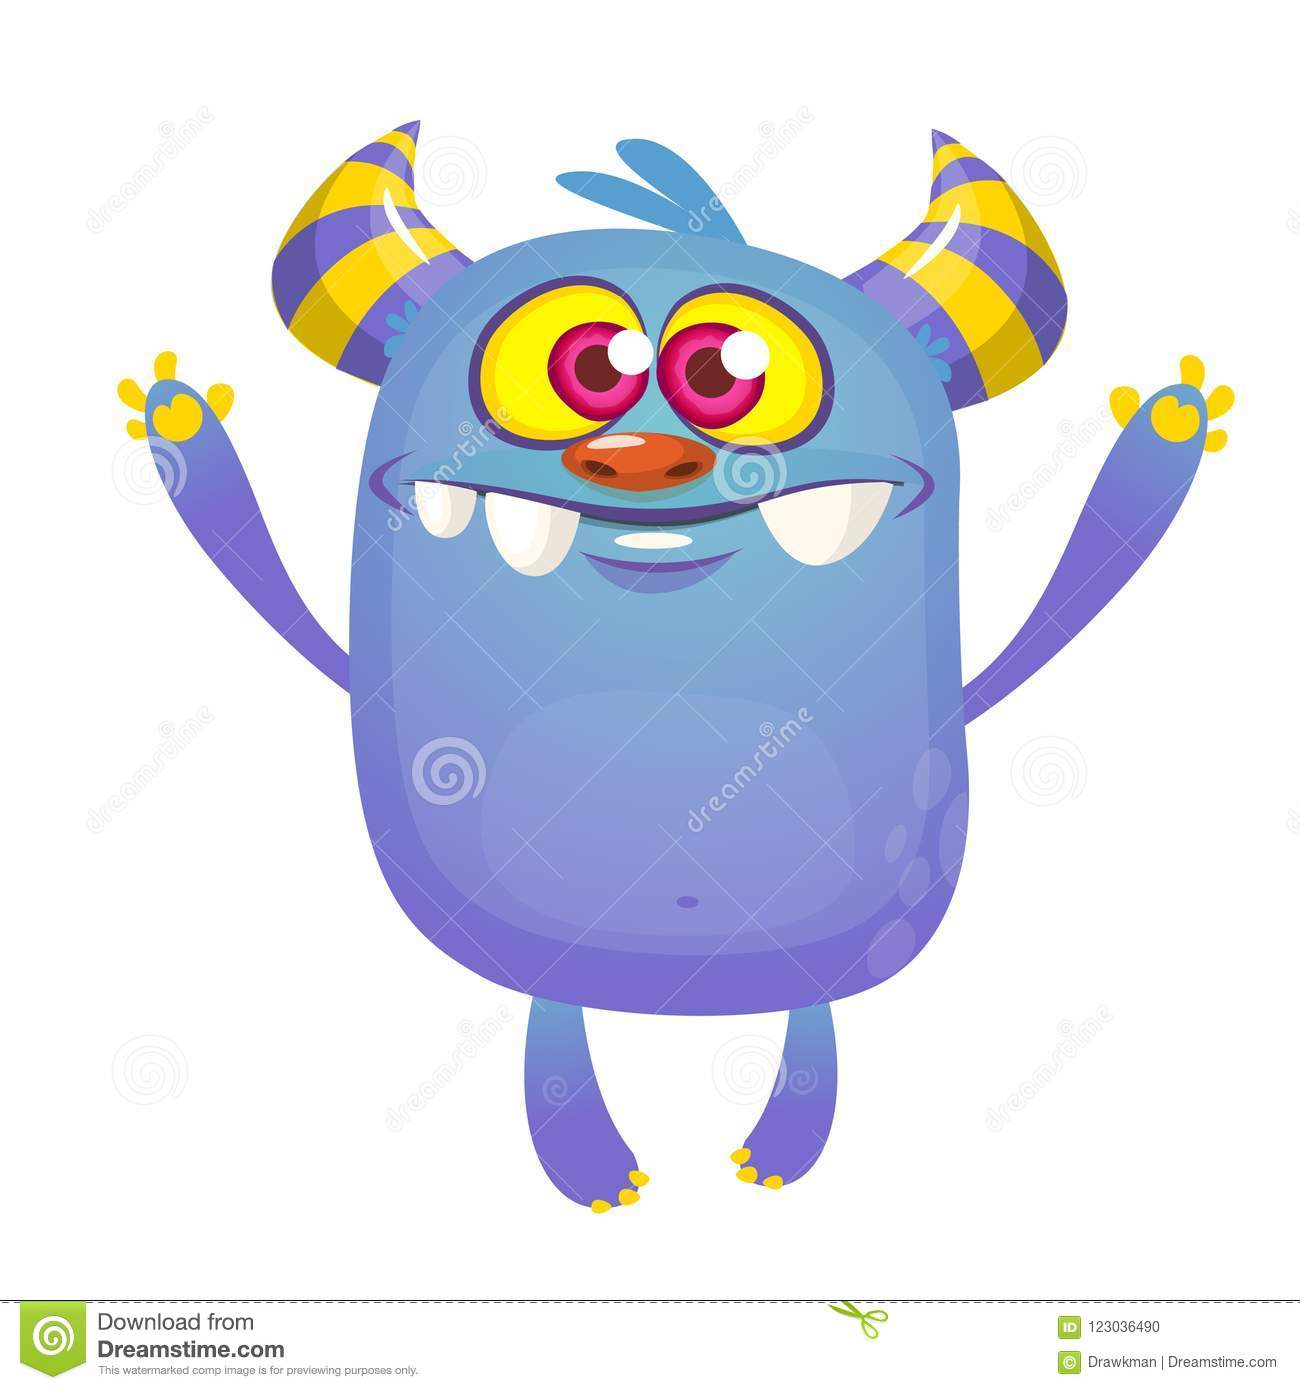 Blue Cartoon Monster With Horns Big Collection Of Cute Monsters Stock Vector Illustration Of Creature Angry 123036490